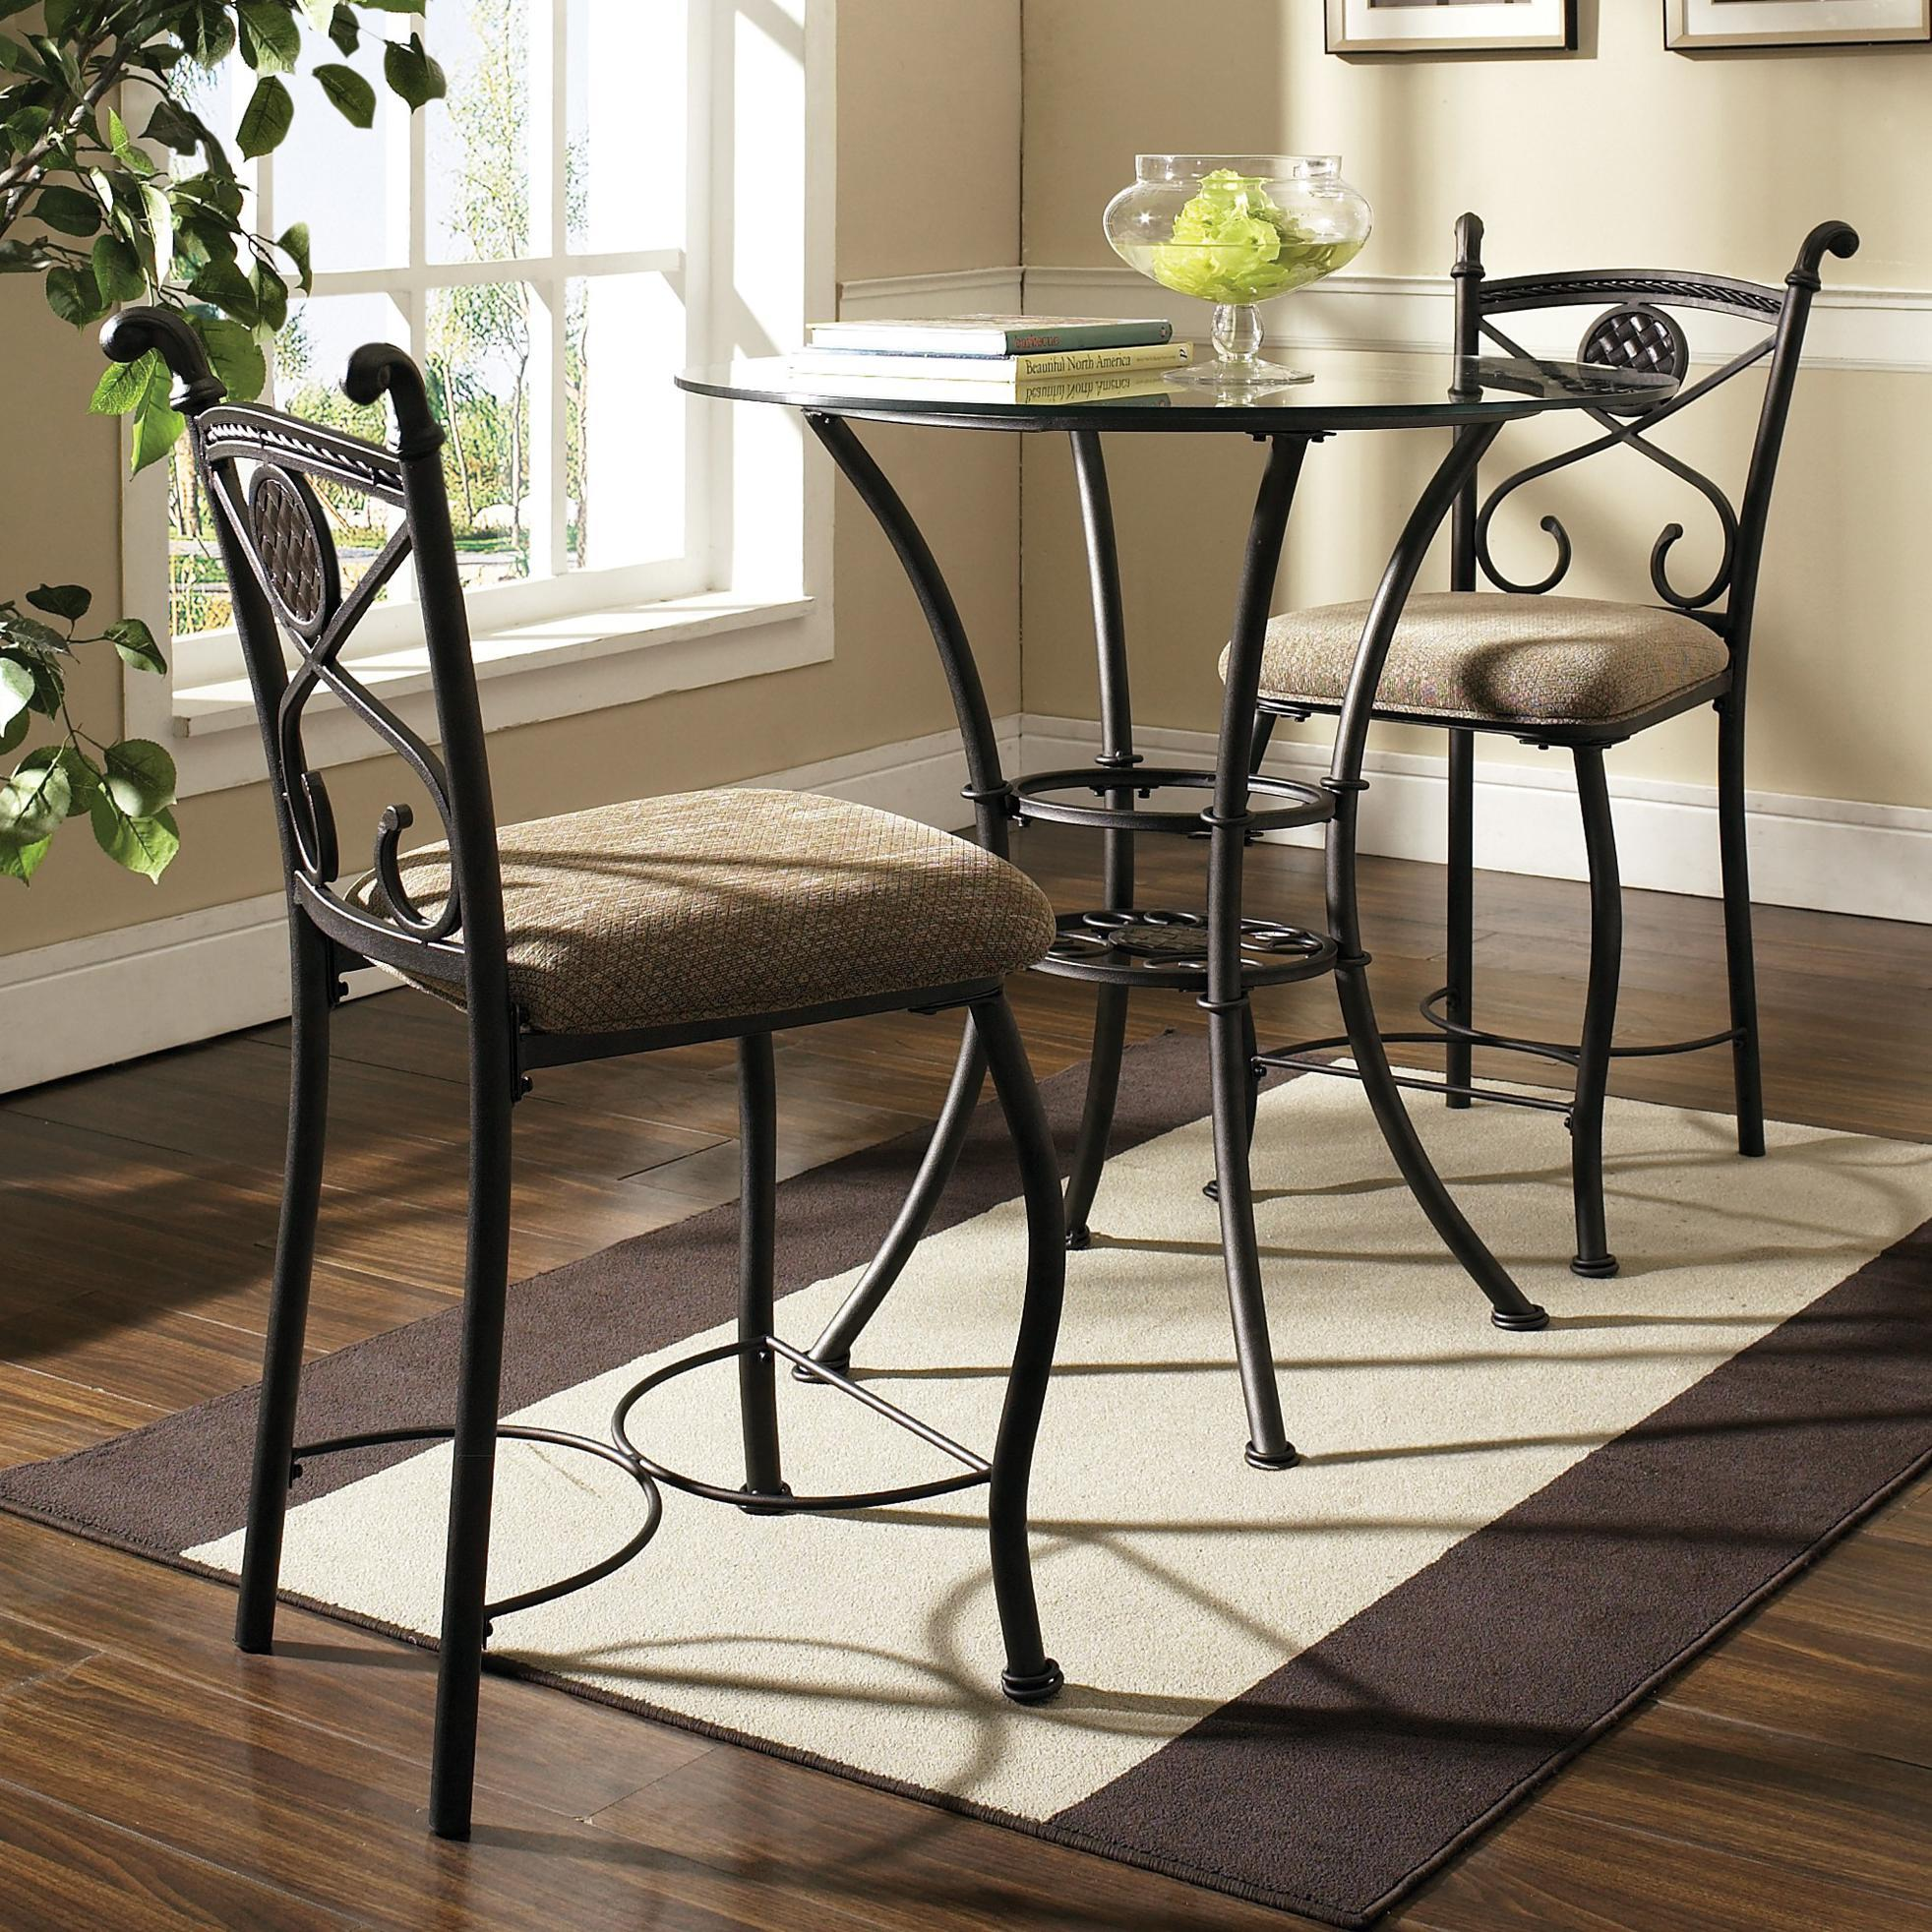 Steve Silver Brookfield Round Glass Top Pub Table & 2 Counter Chairs - Item Number: STEV-GRP-BK360X-PUBTBL 2